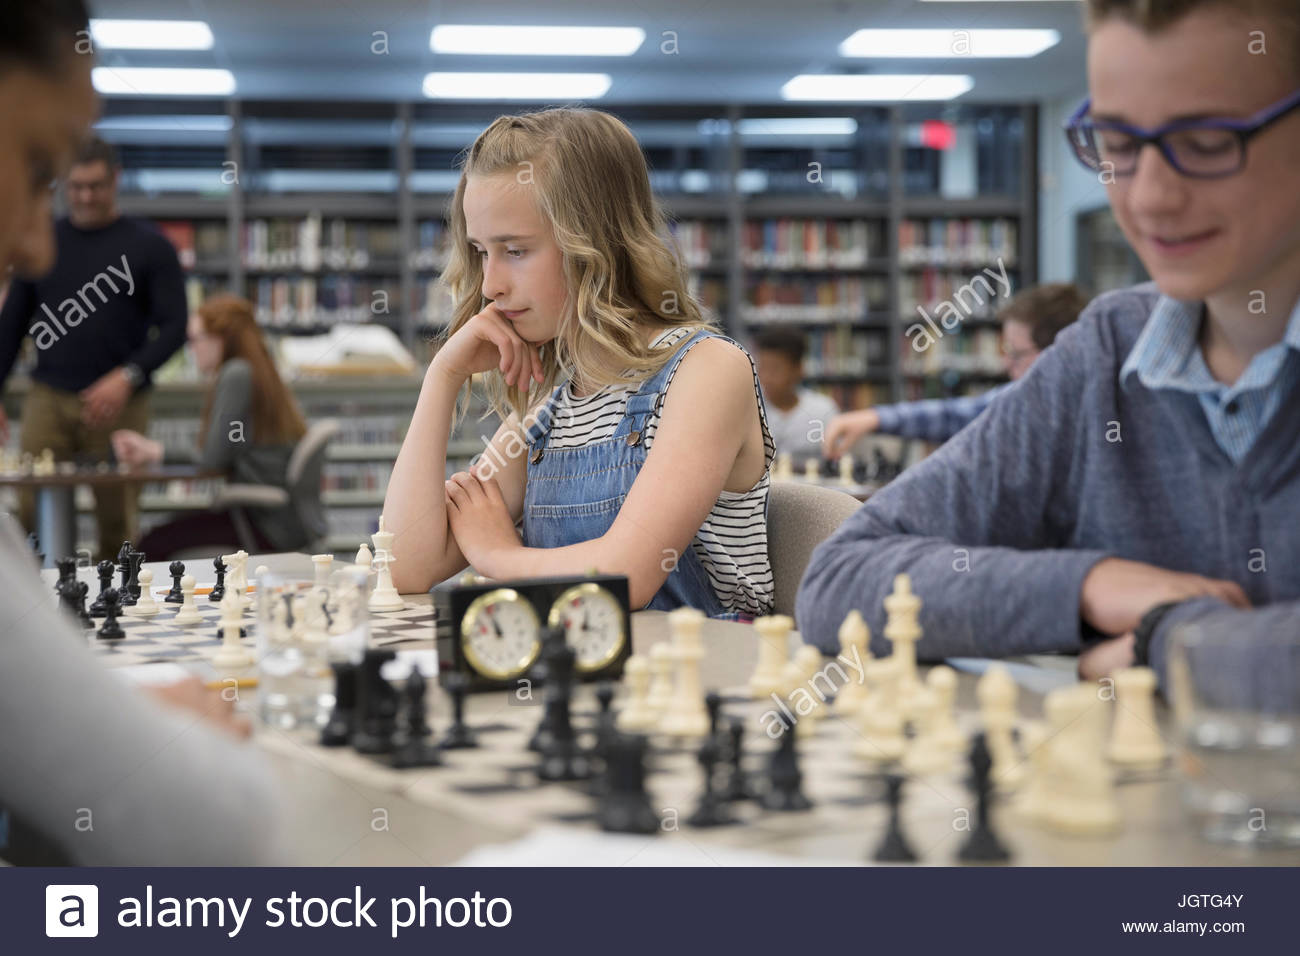 Middle school students playing chess in chess club - Stock Image